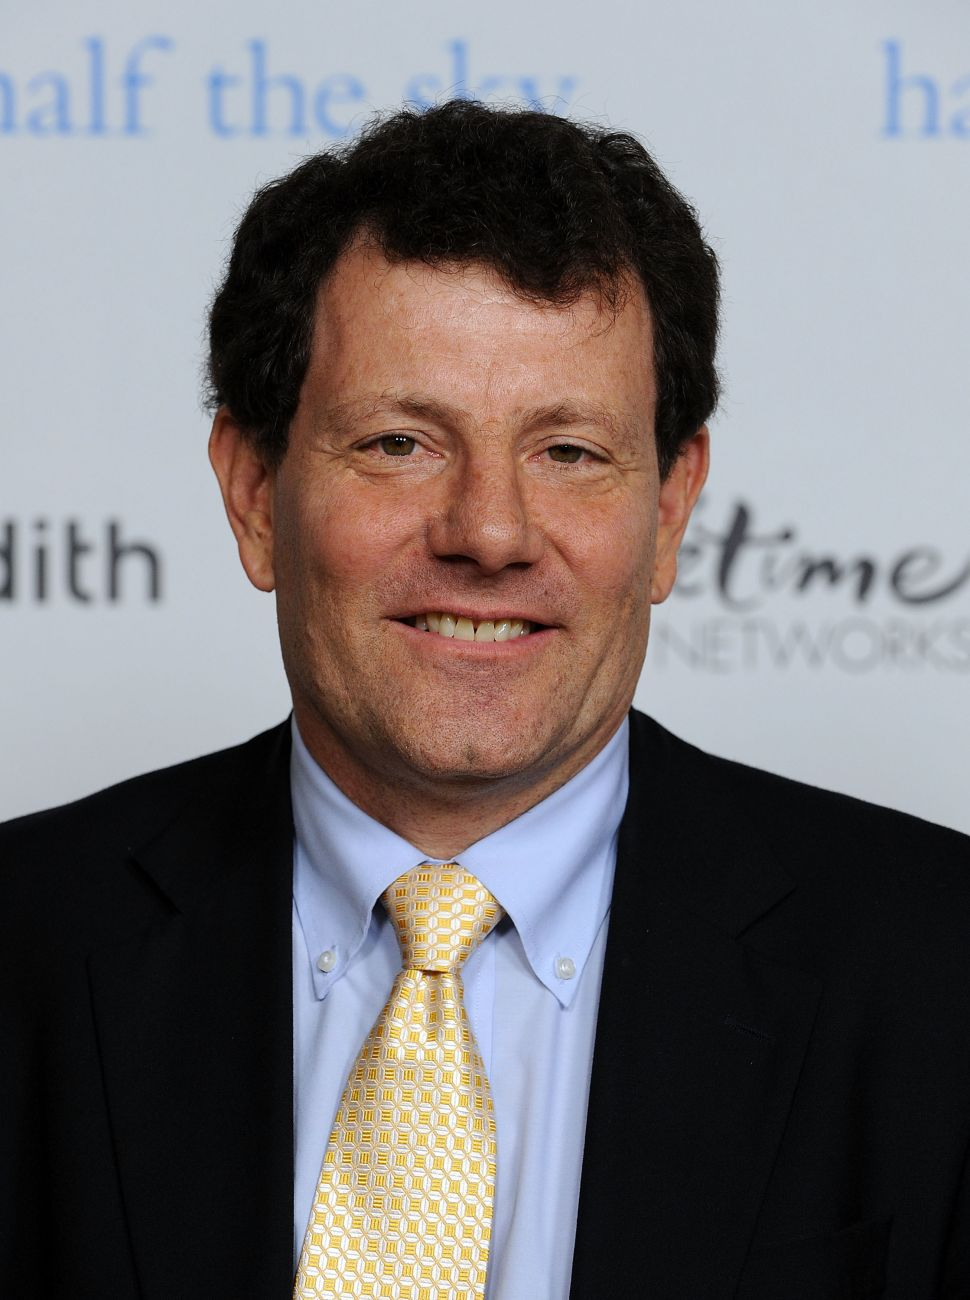 The Insipid Sermons of Nicholas Kristof